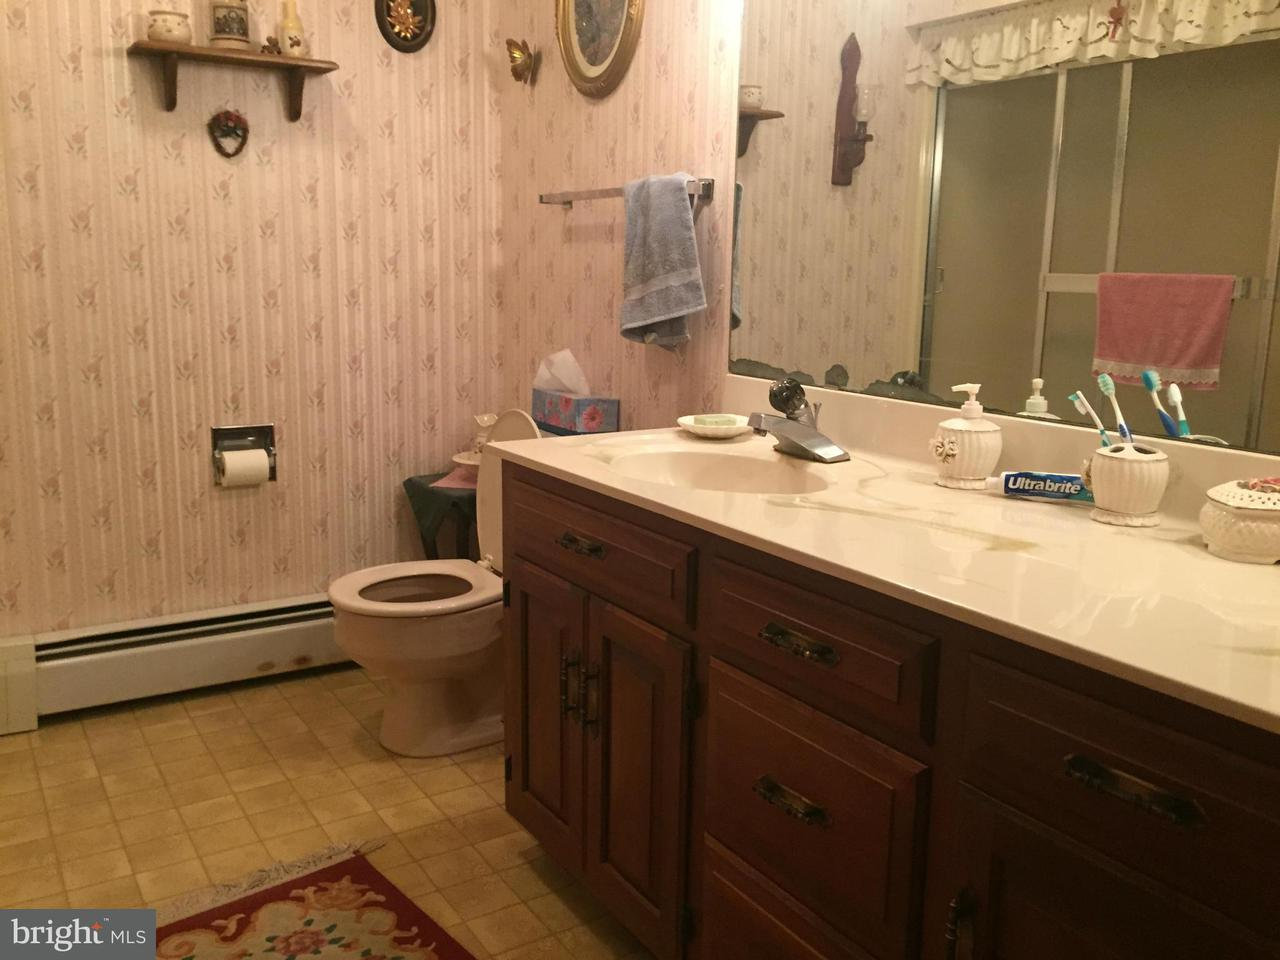 Additional photo for property listing at 15021 Molly Pitcher Hwy 15021 Molly Pitcher Hwy Greencastle, Πενσιλβανια 17225 Ηνωμενεσ Πολιτειεσ